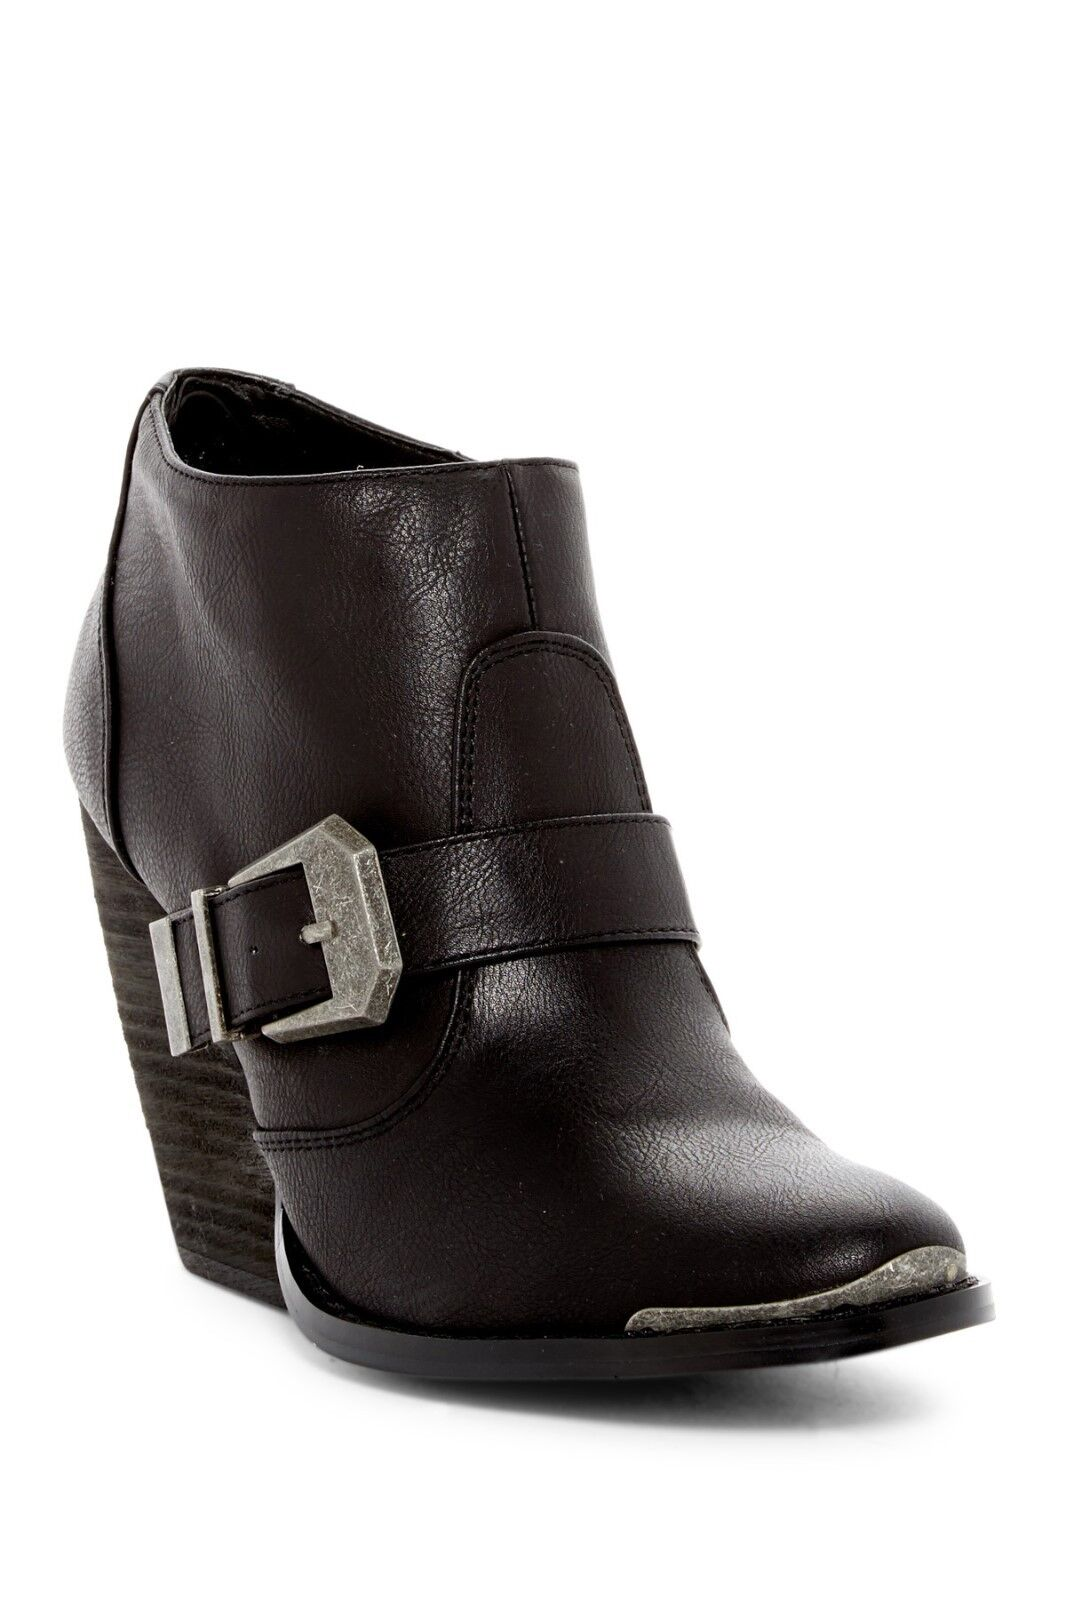 70 Women's Very Very Very Volatile Yorker Ankle Boots  Black  Size  8 f525a9